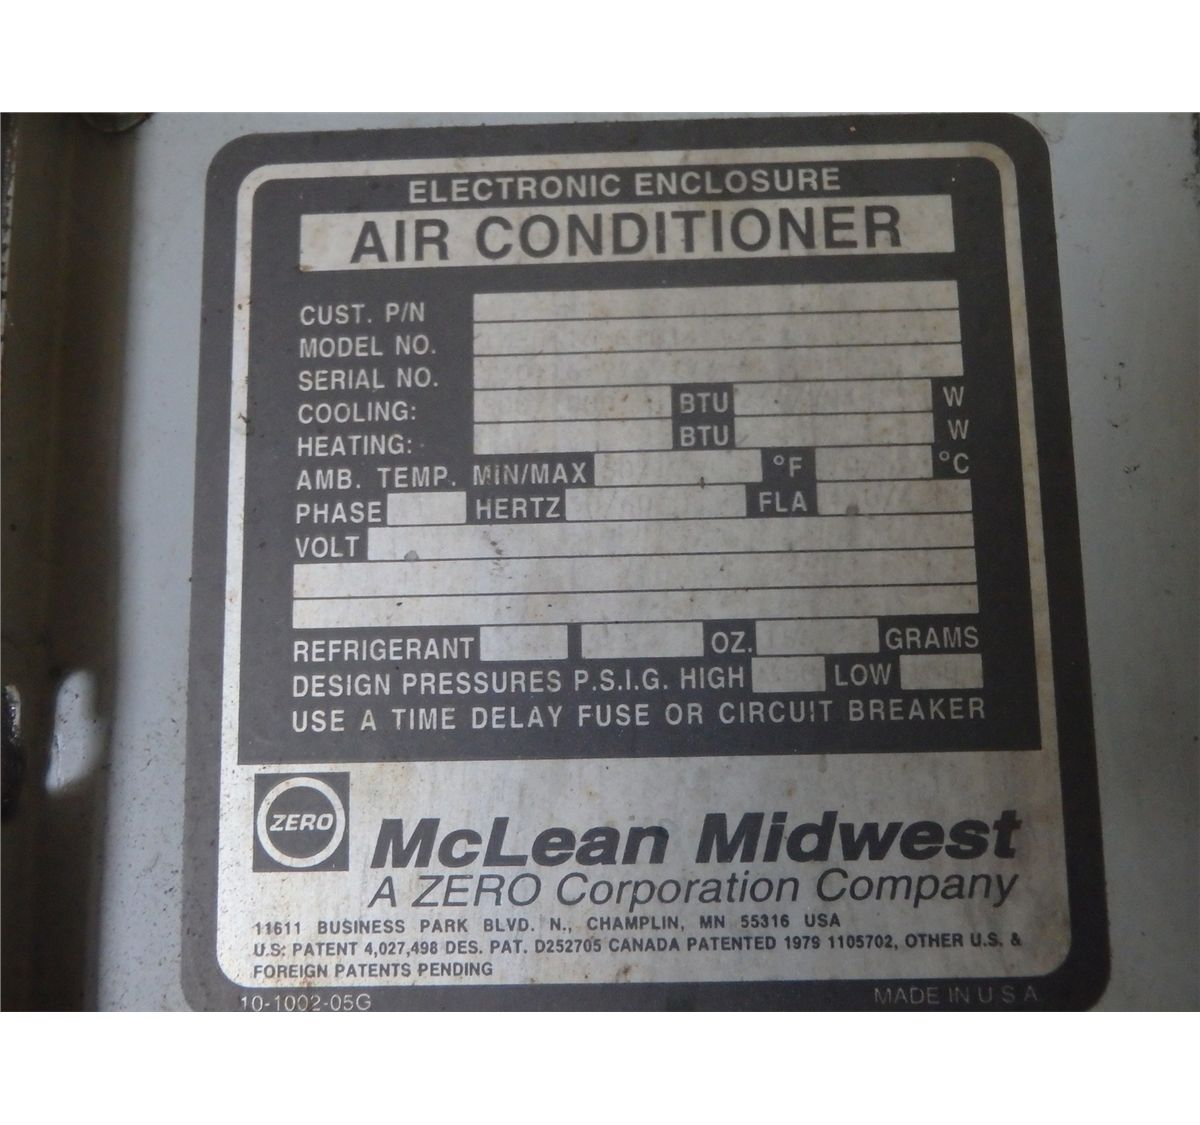 medium resolution of  image 5 mclean midwest electrical box chiller air conditioner tag not legible